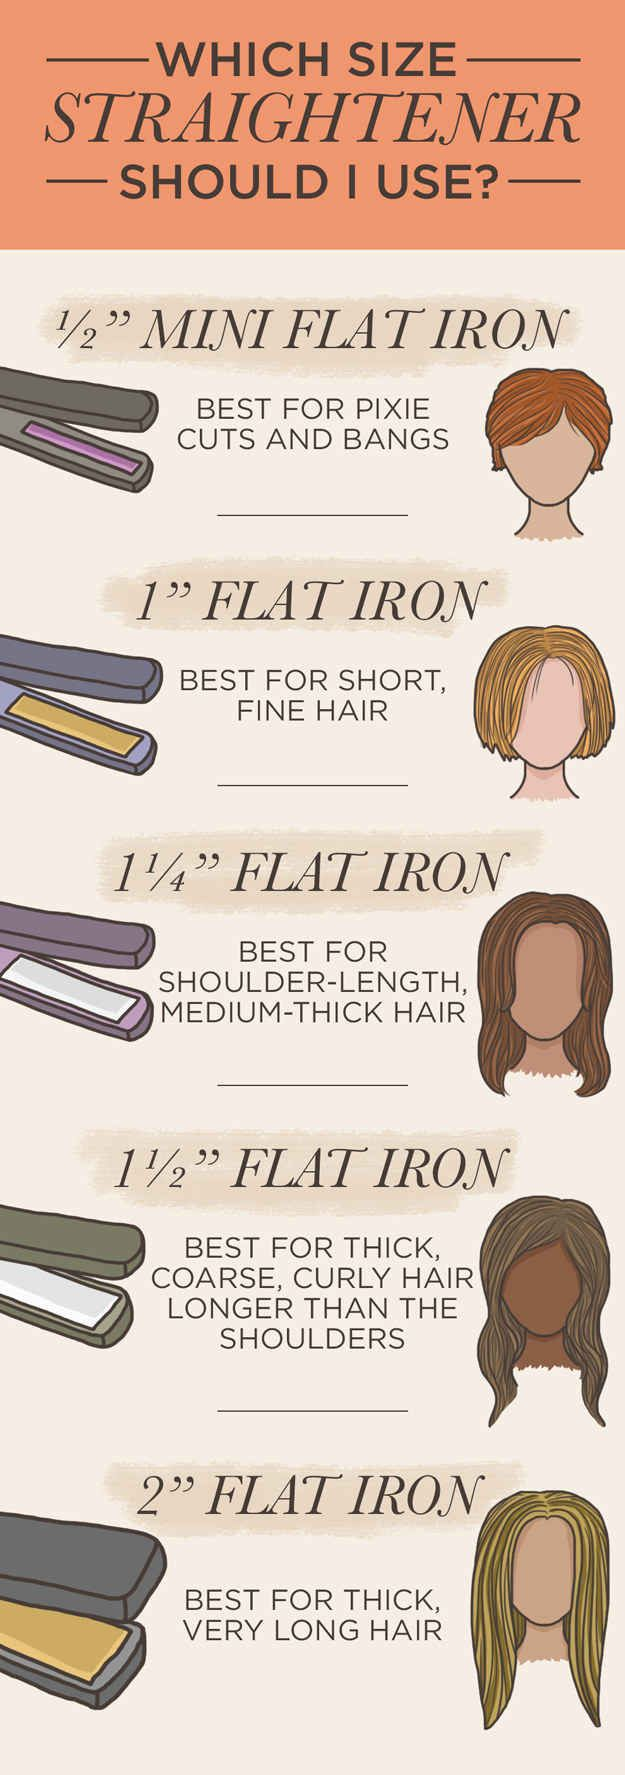 12836 Best Images About Hair Straighteners On Pinterest